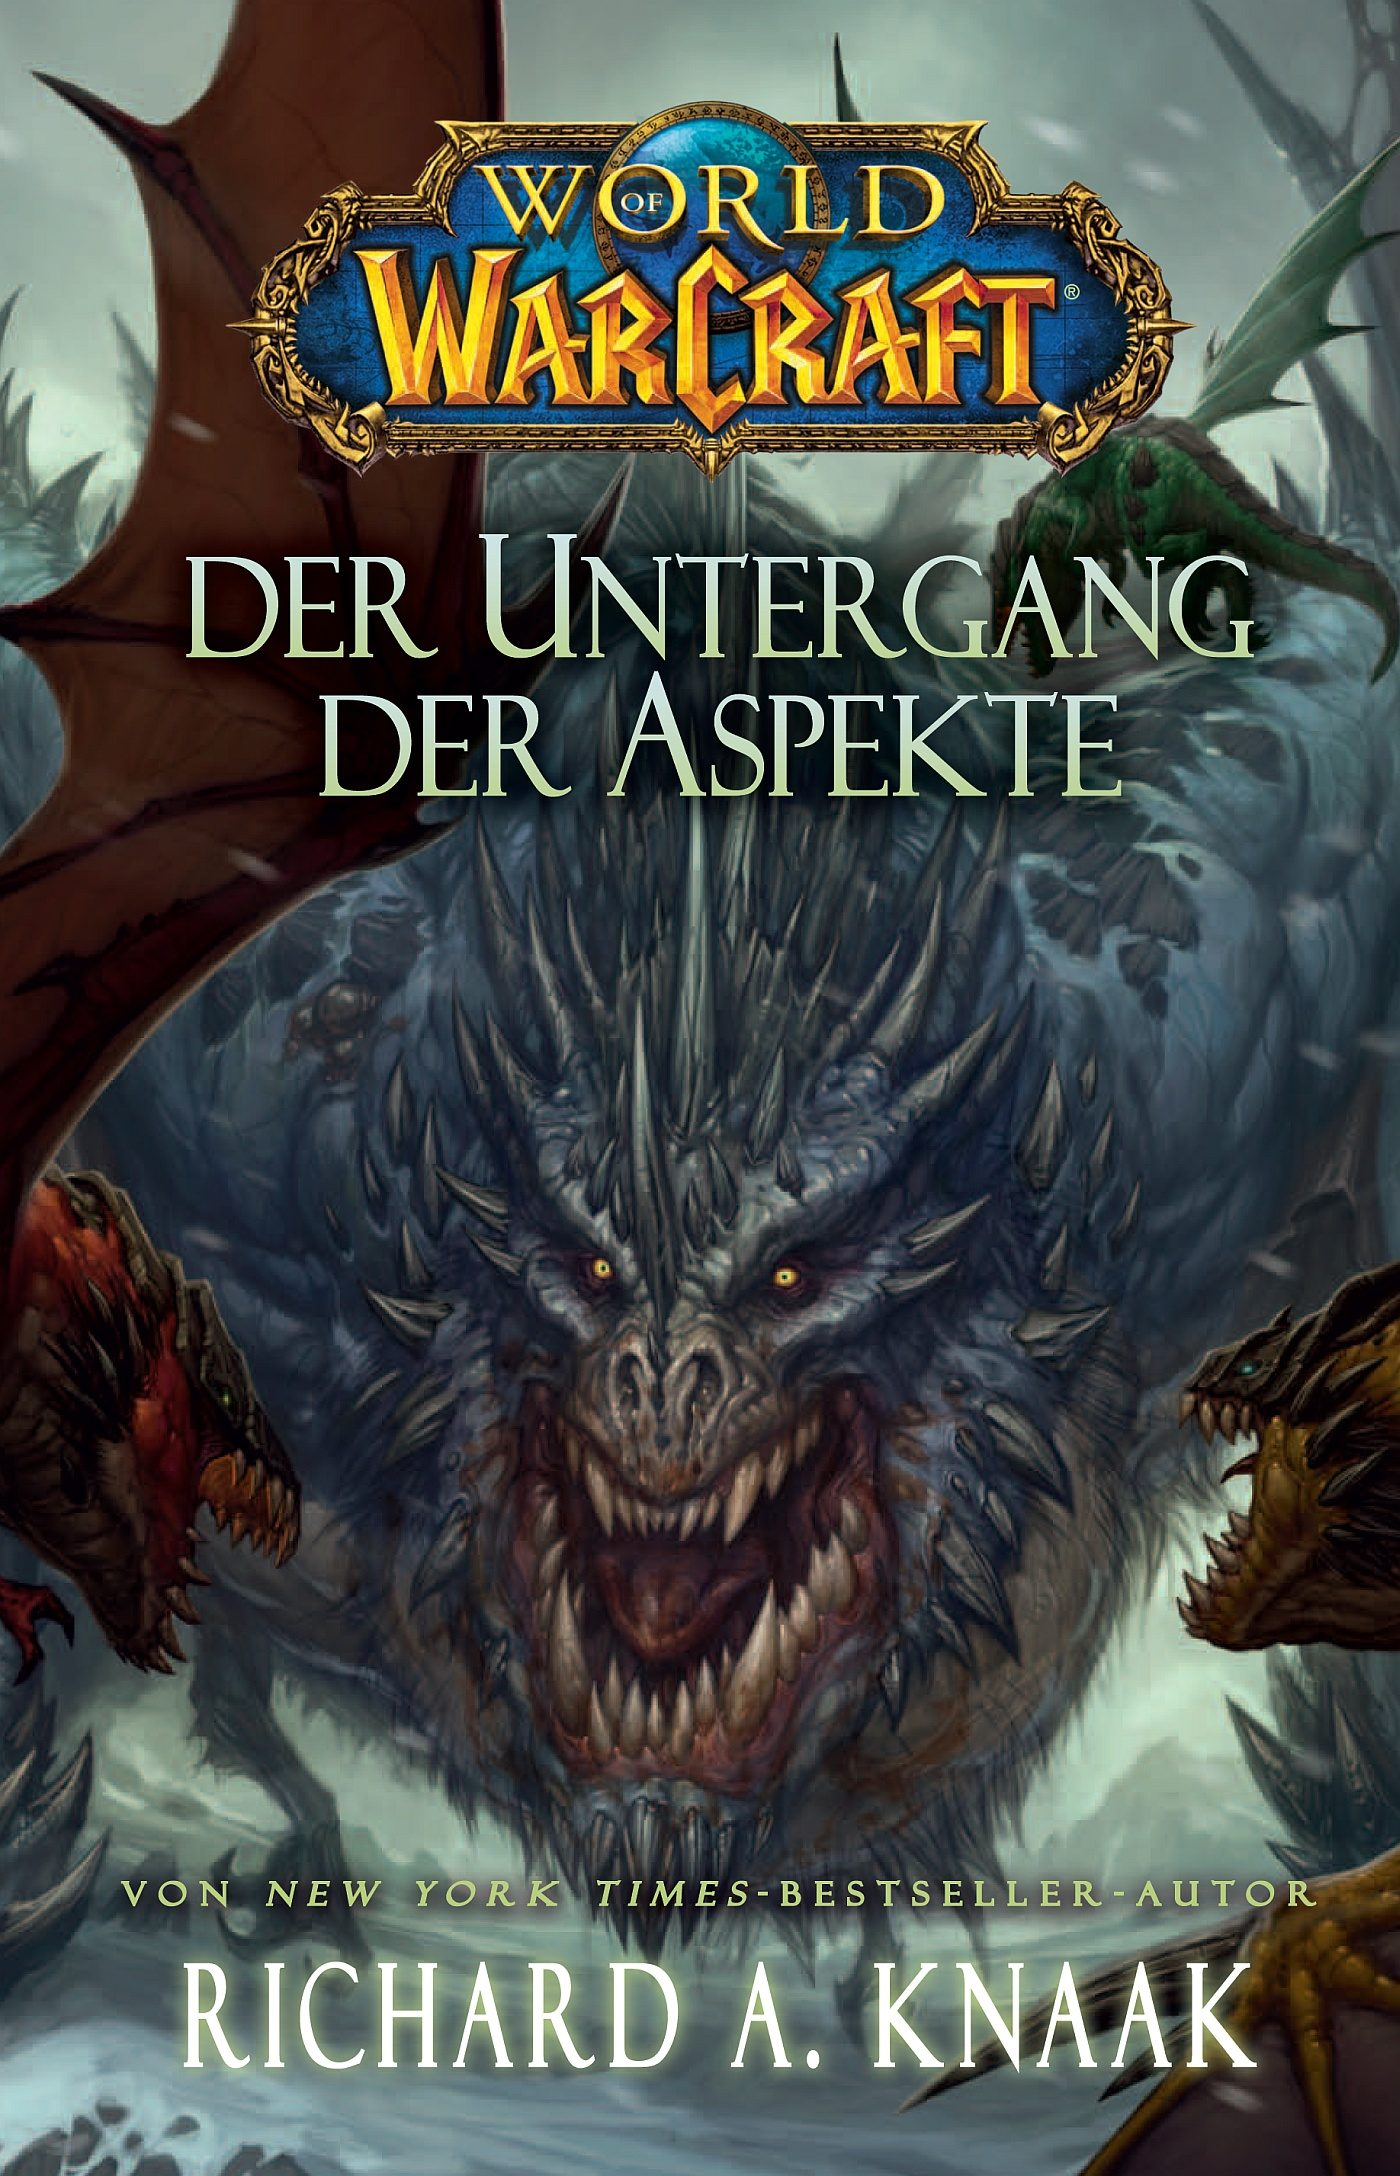 Descargar Libros Warcraft World Of Warcraft Der Untergang Der Aspekte Ebook Richard A Knaak Descargar Libro Pdf O Epub 9783833228841